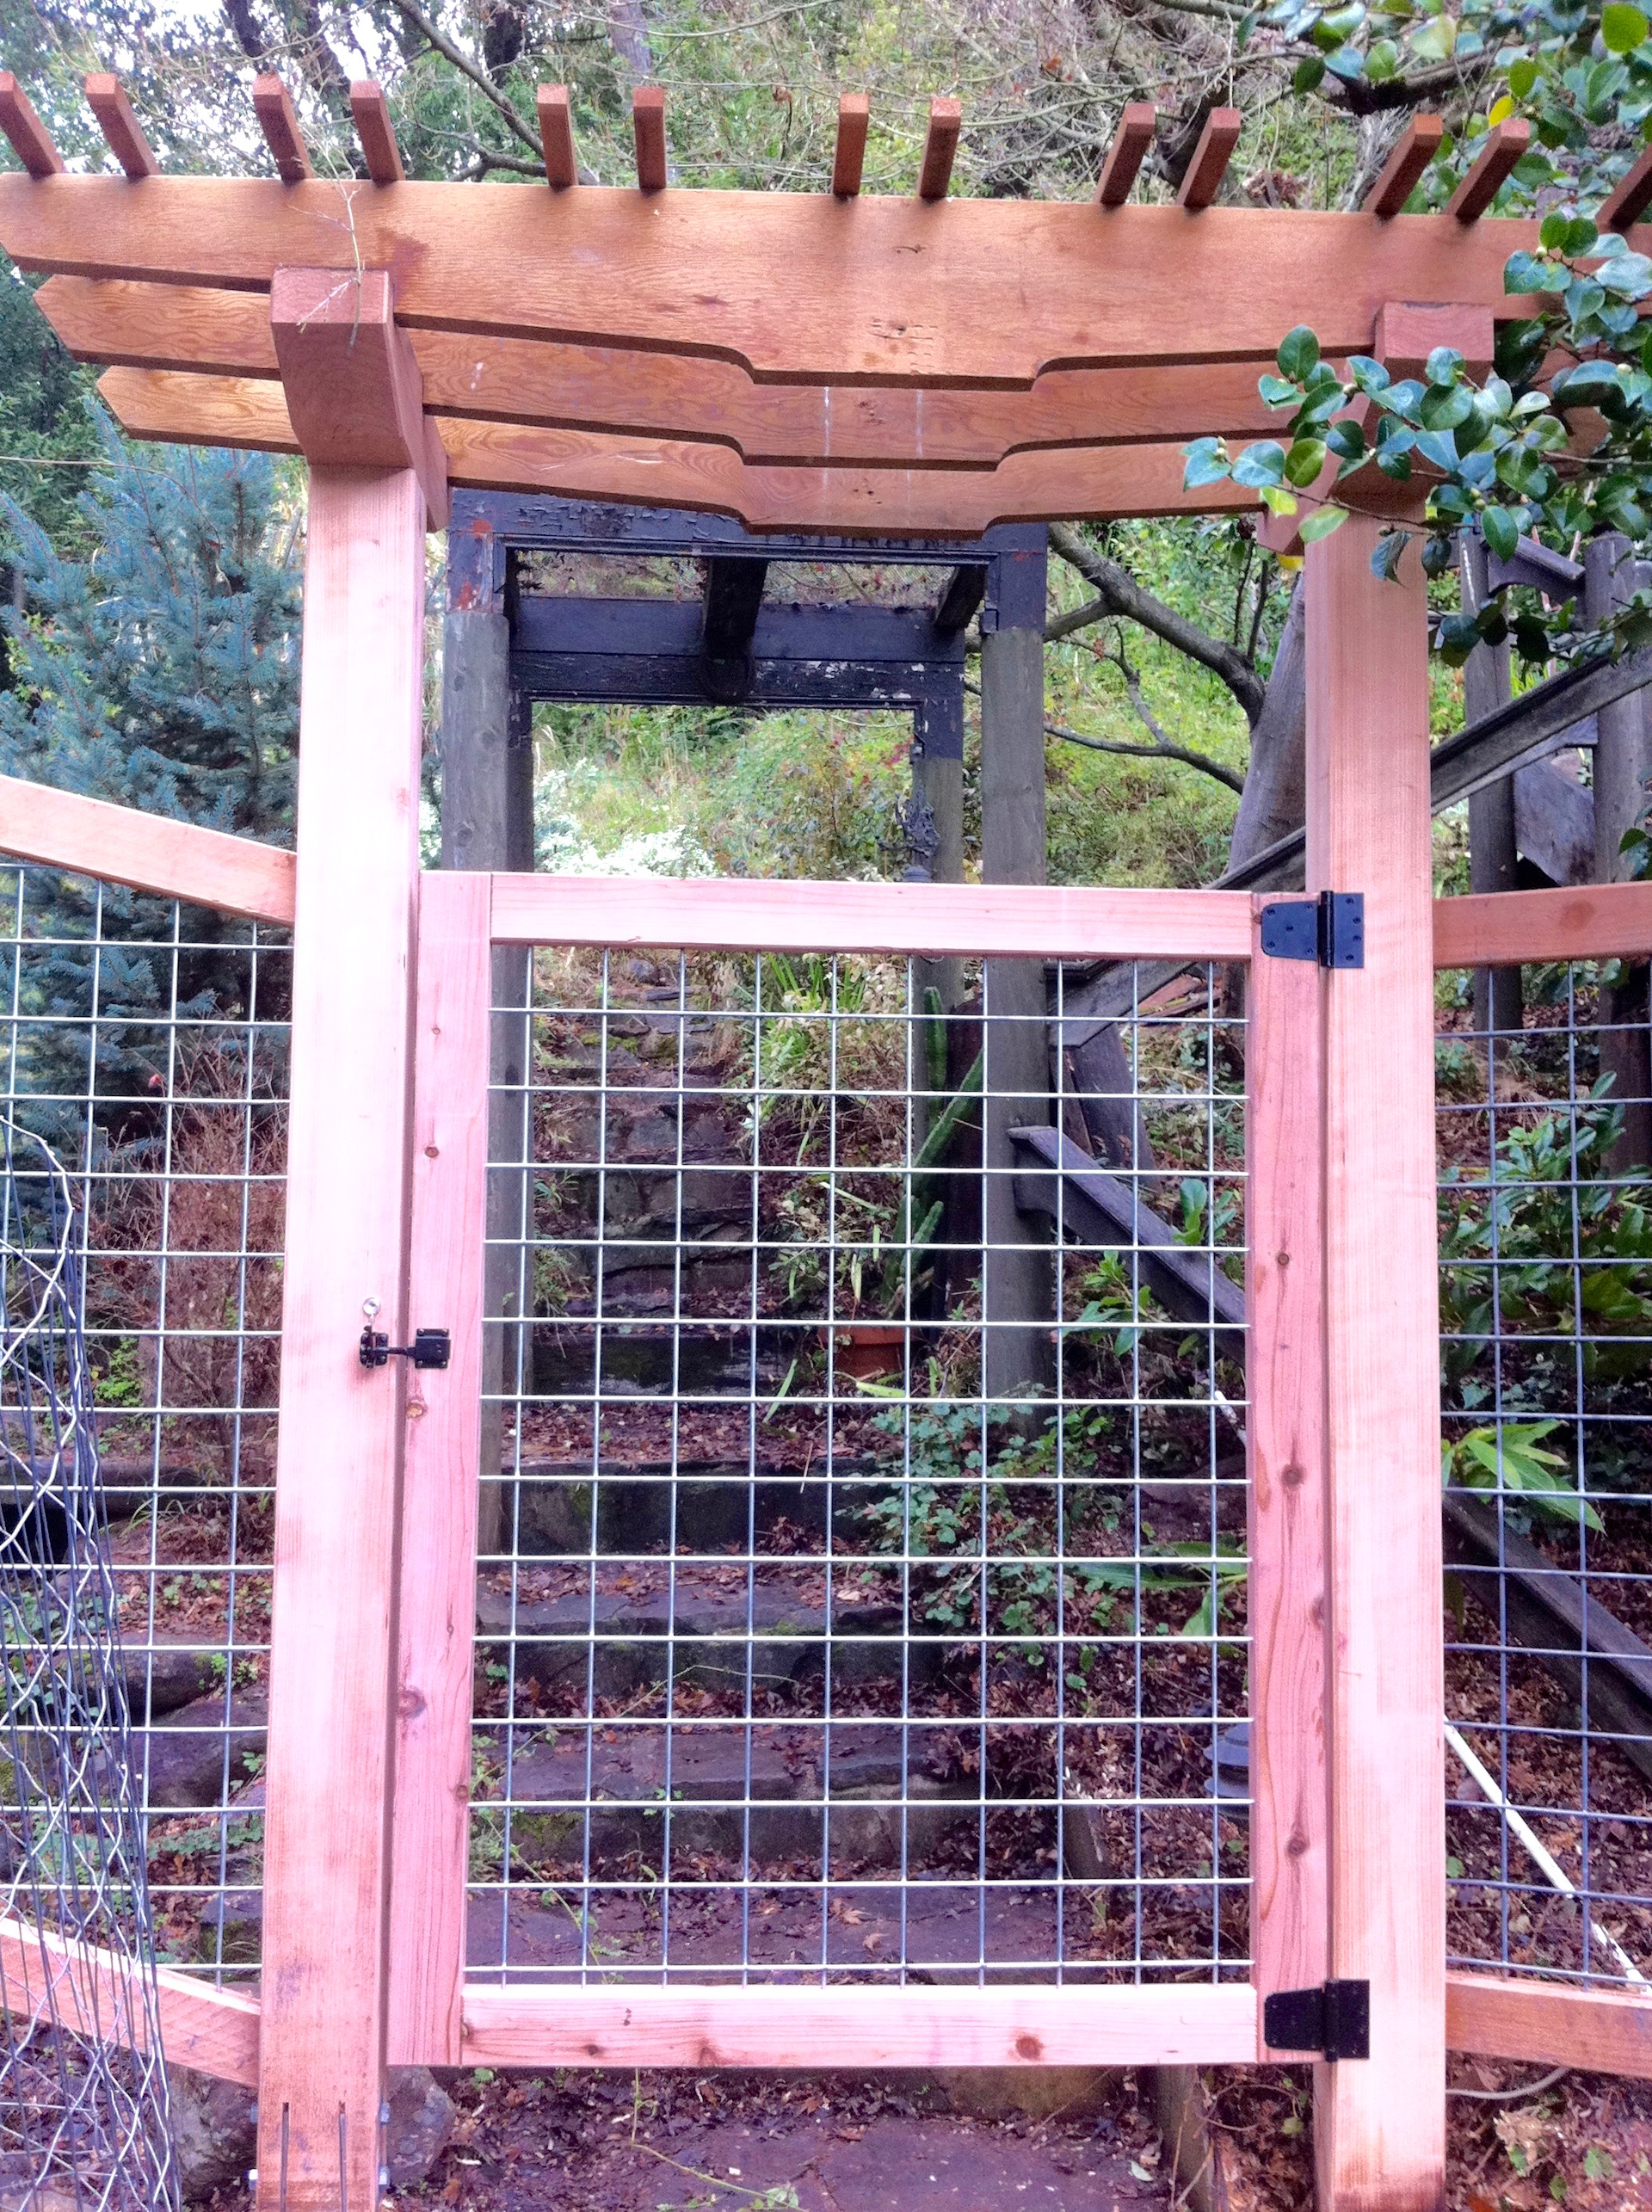 ENTRY ARBOR AND HOGWIRE GATE